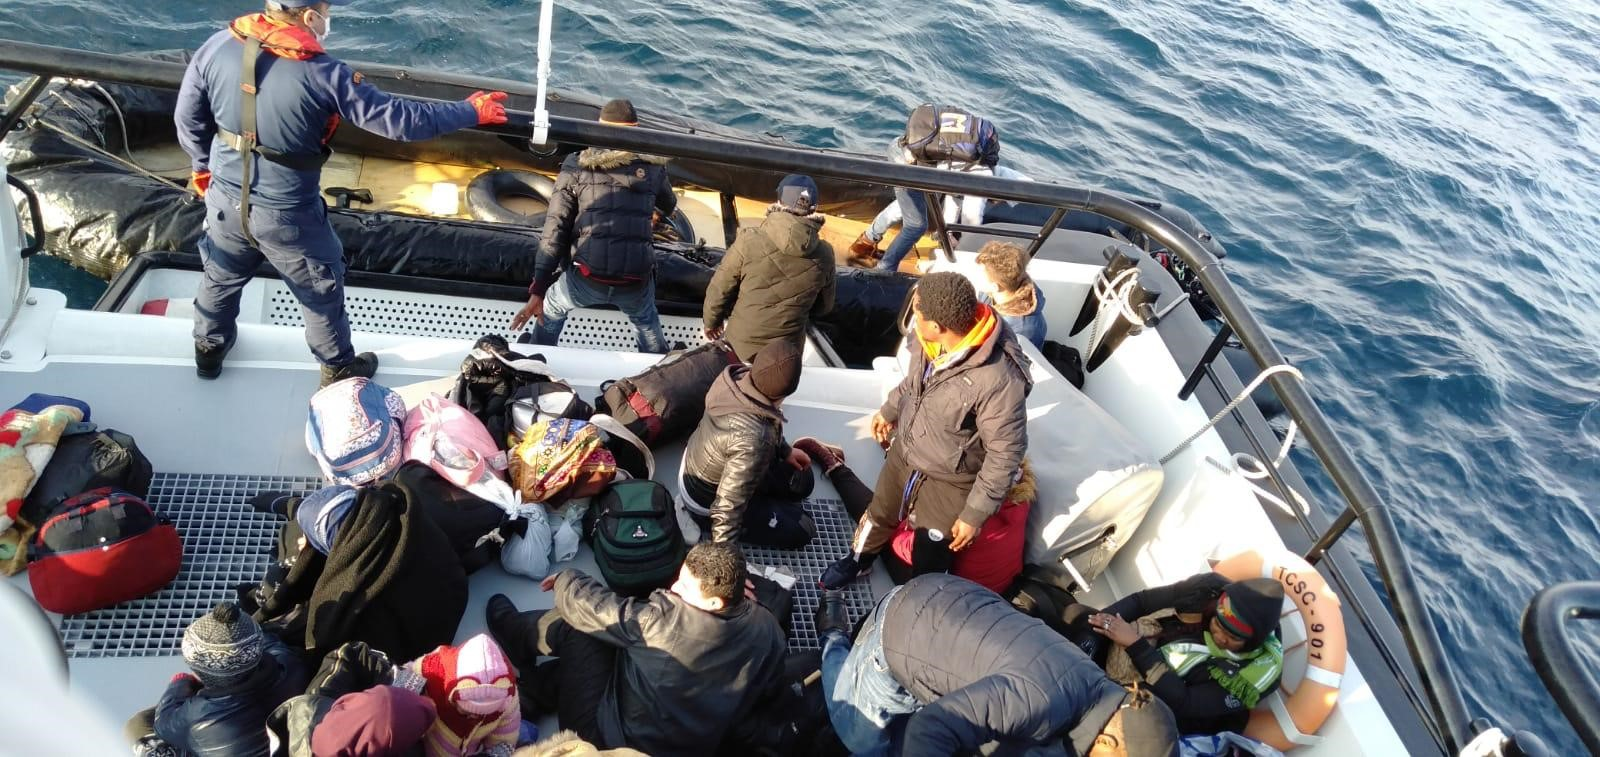 20 Irregular Migrants Were Rescued Off The Coast Of Aydın